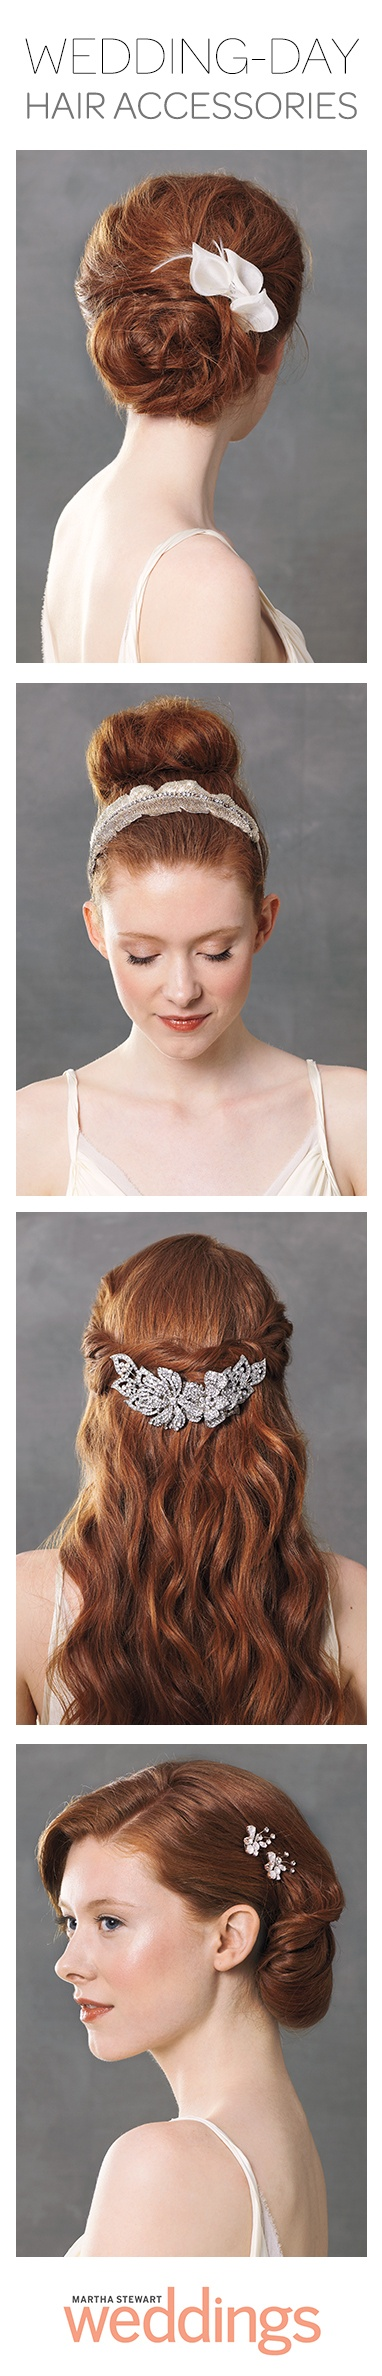 wedding hair styles.